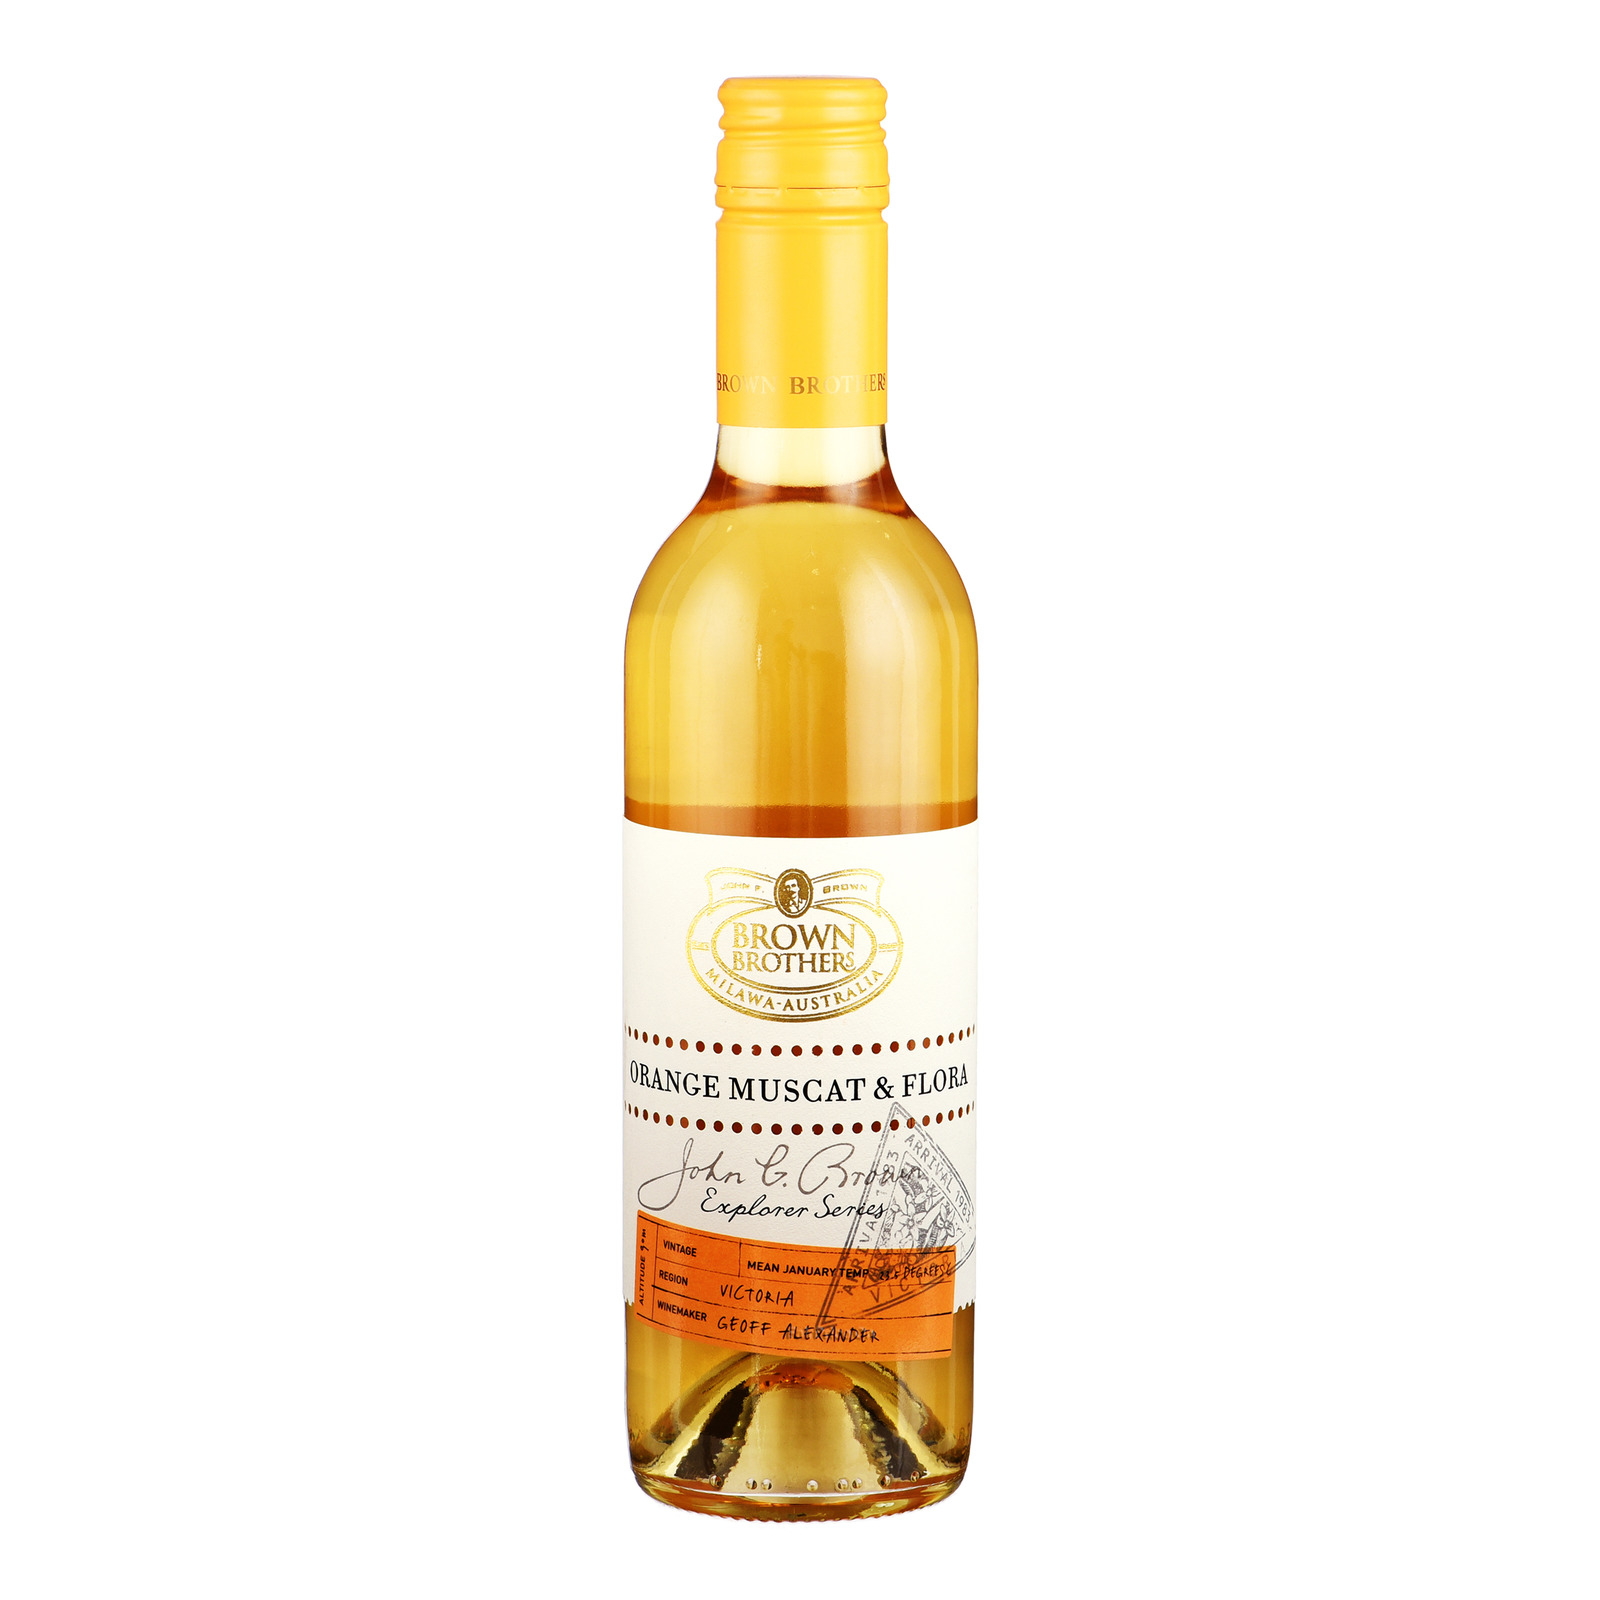 Brown Brothers Explorer Series White Wine - OrangeMuscat &Flora